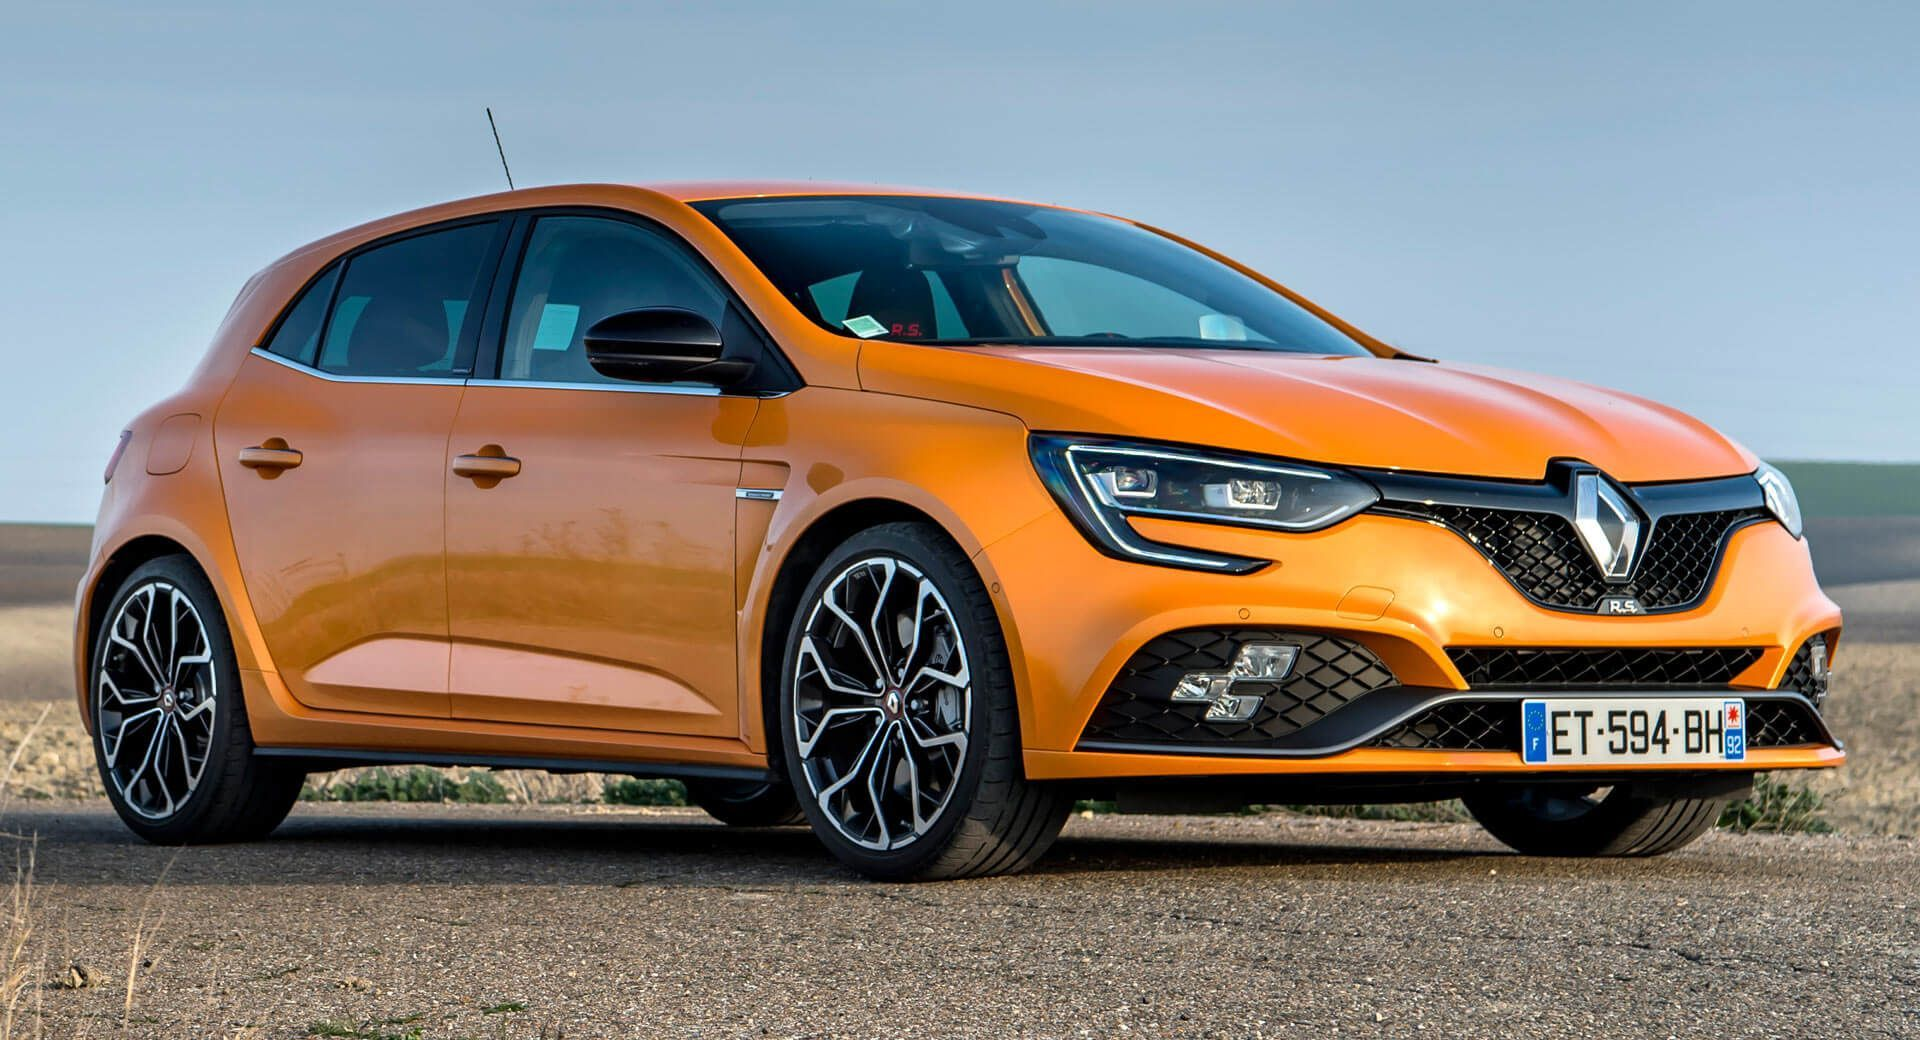 2019 Renault Megane RS Is Already Available The Used Car Market news New Cars